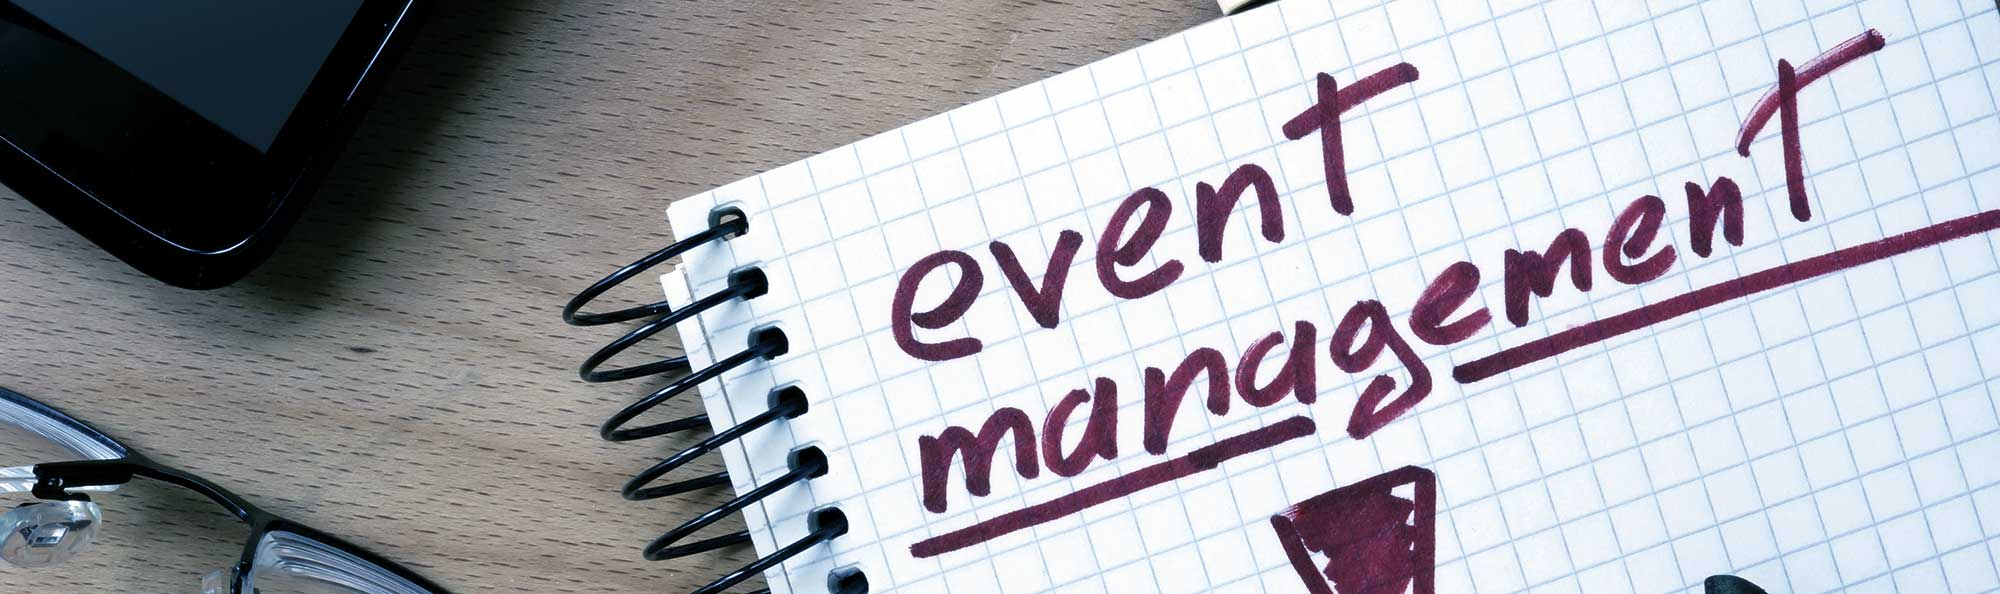 Events management - Euromanagement